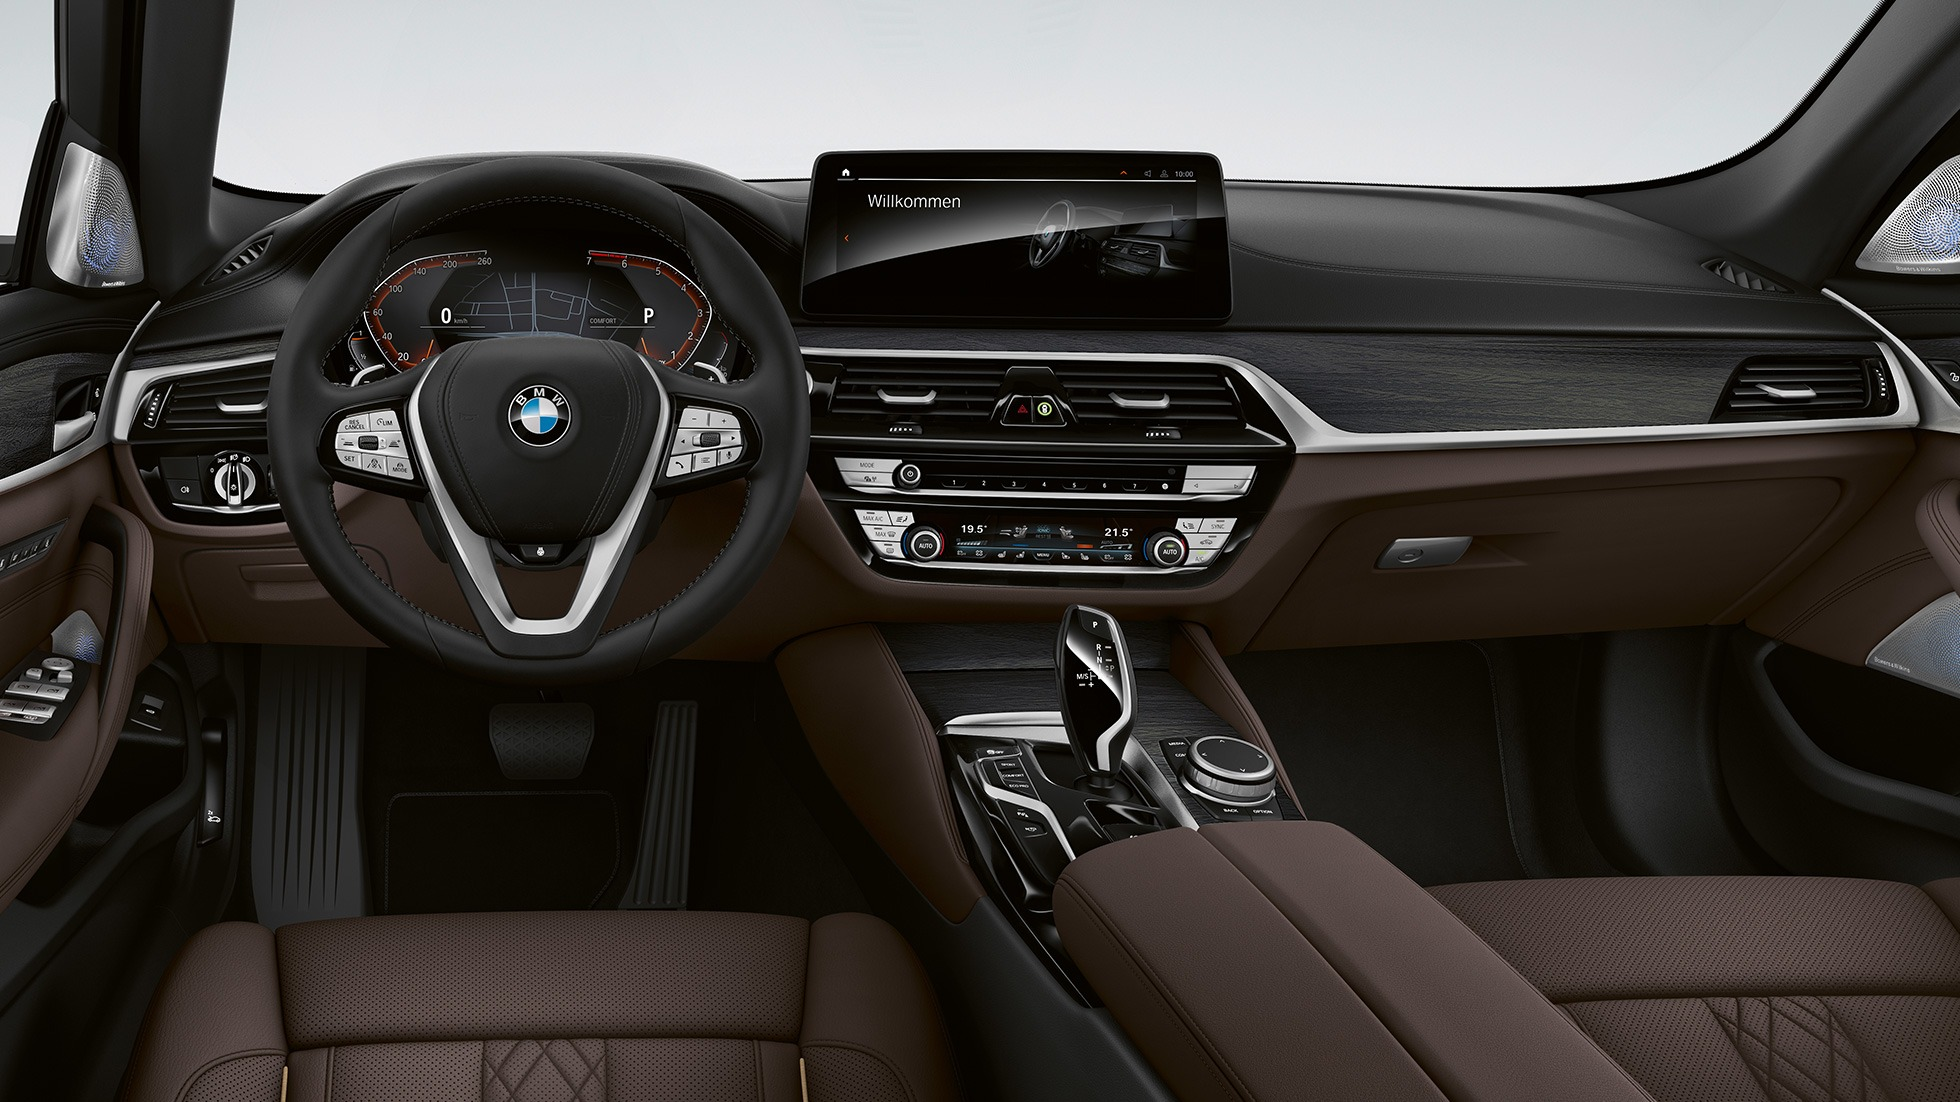 bmw-5-series-touring-models-and-equipment-lines-02-03